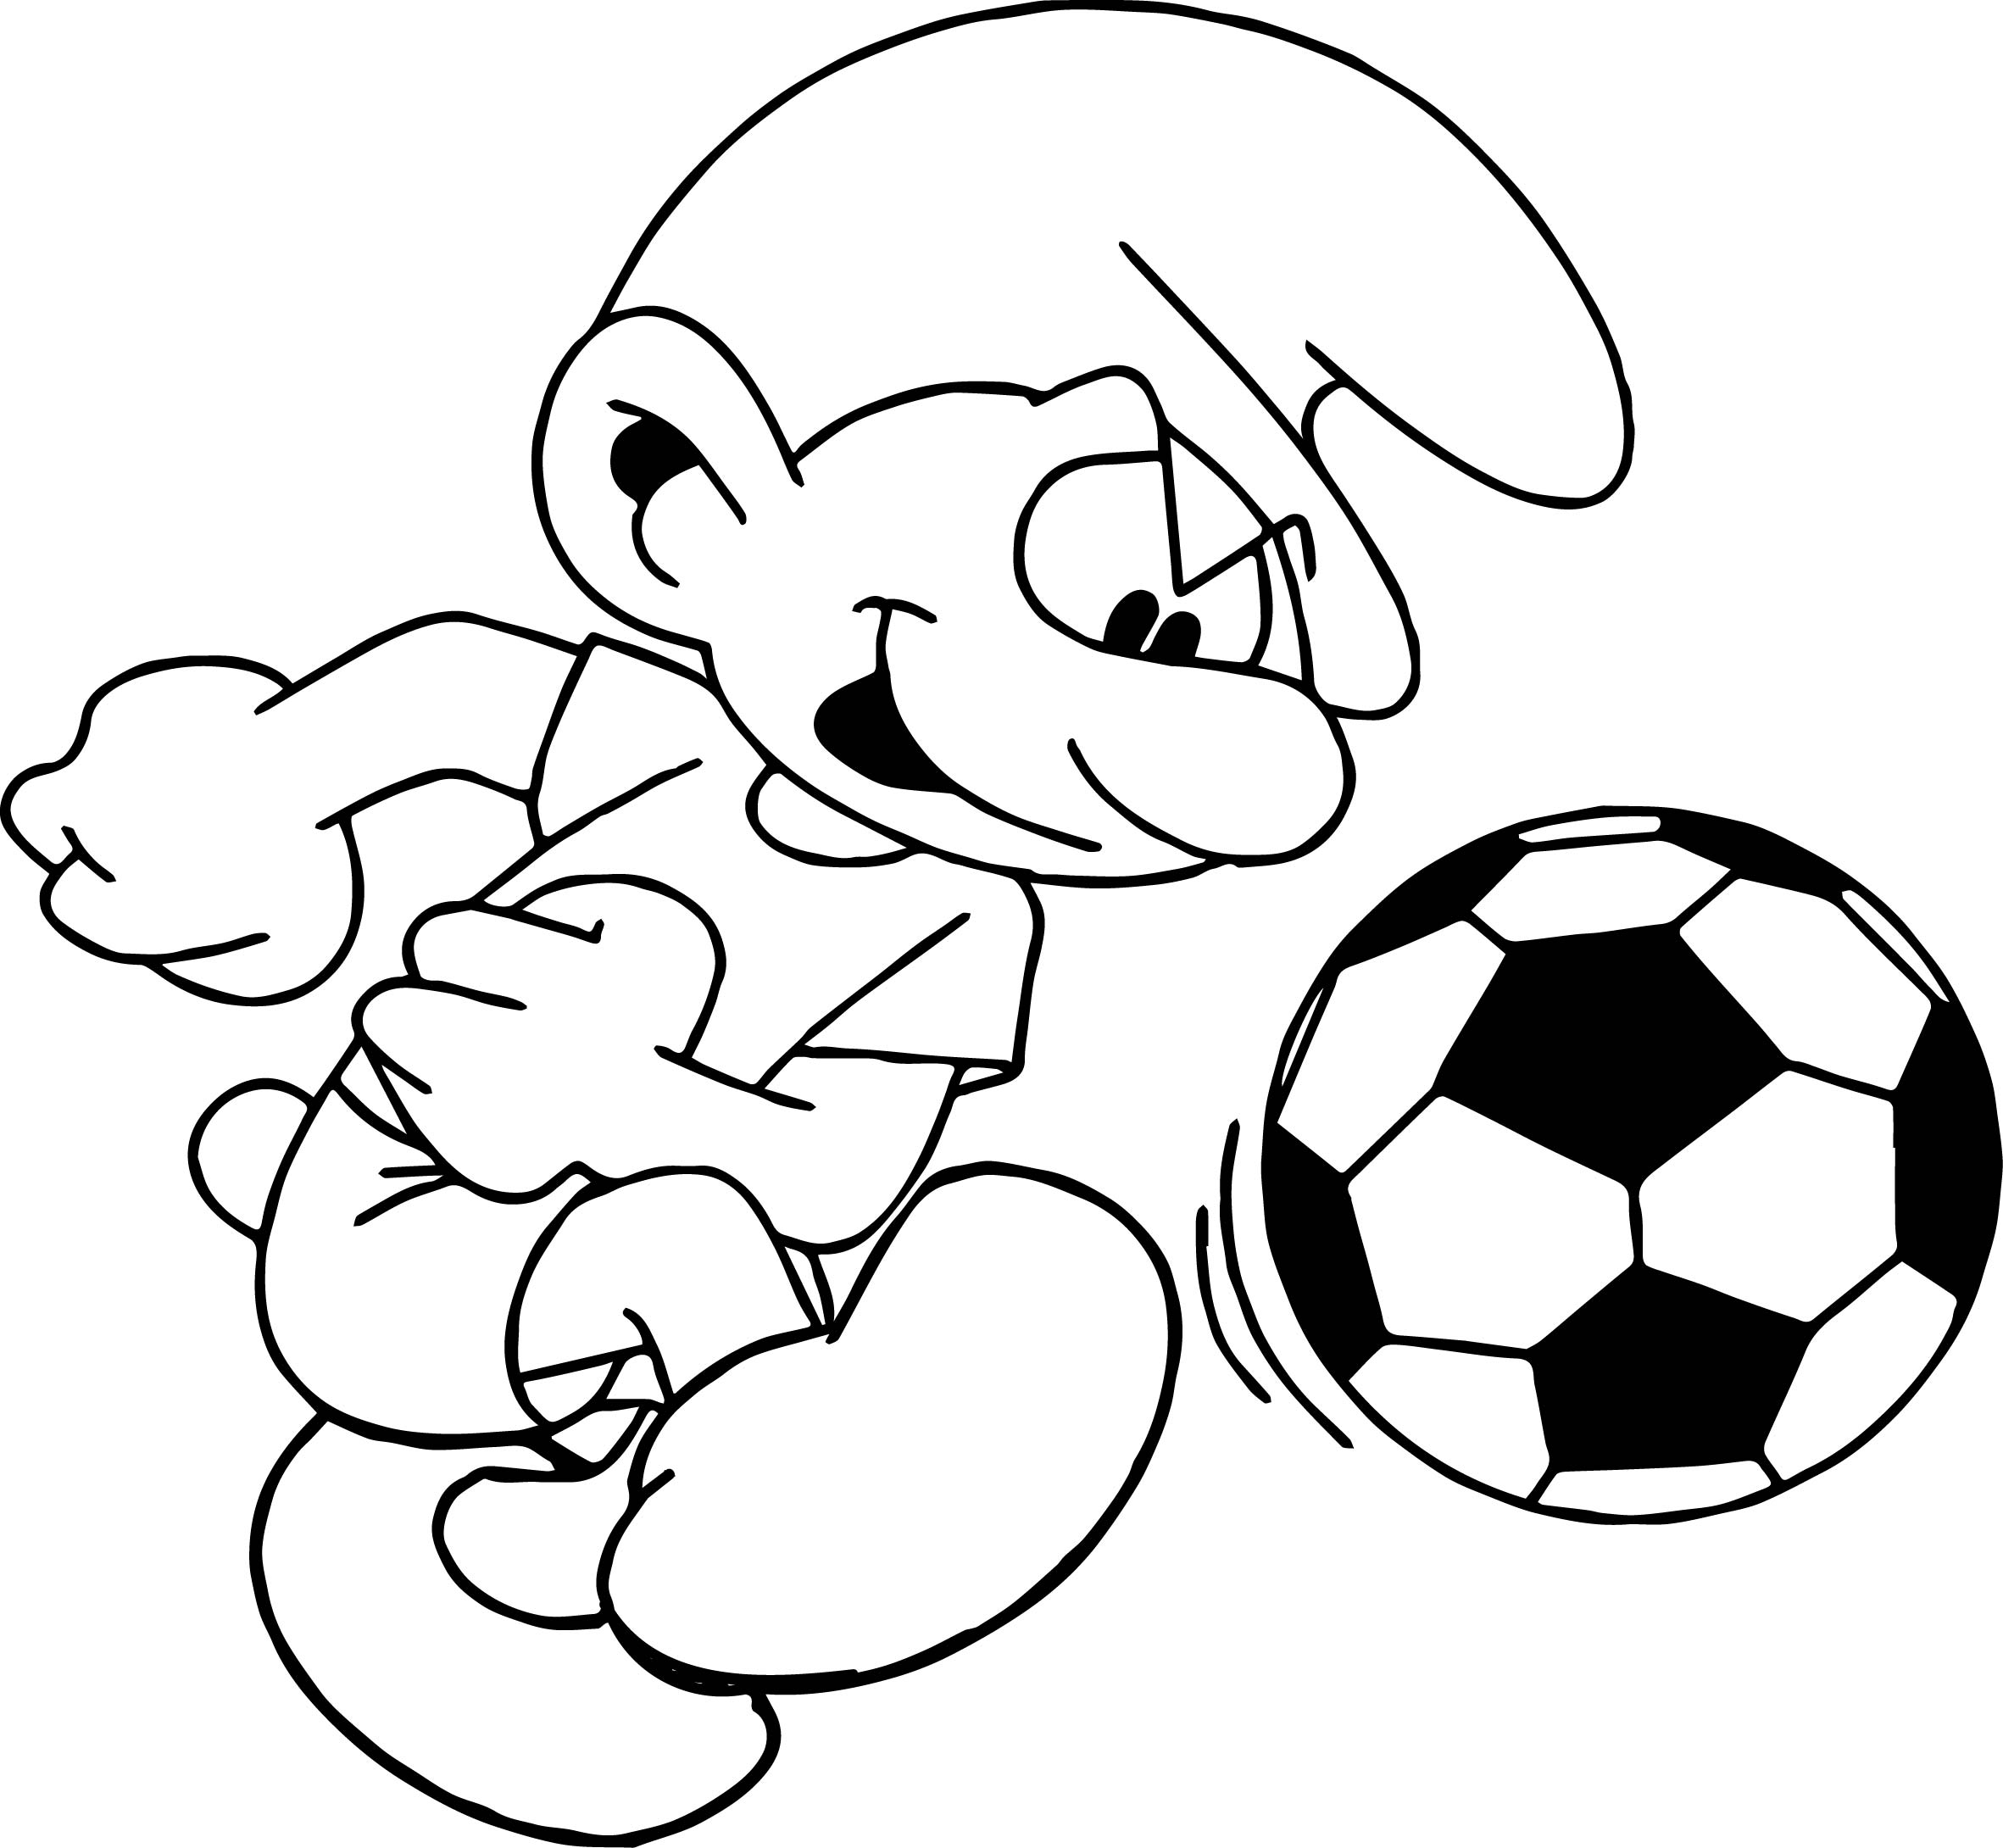 Cute baby sea animal coloring pages eliolera com farm for Cute sea animal coloring pages